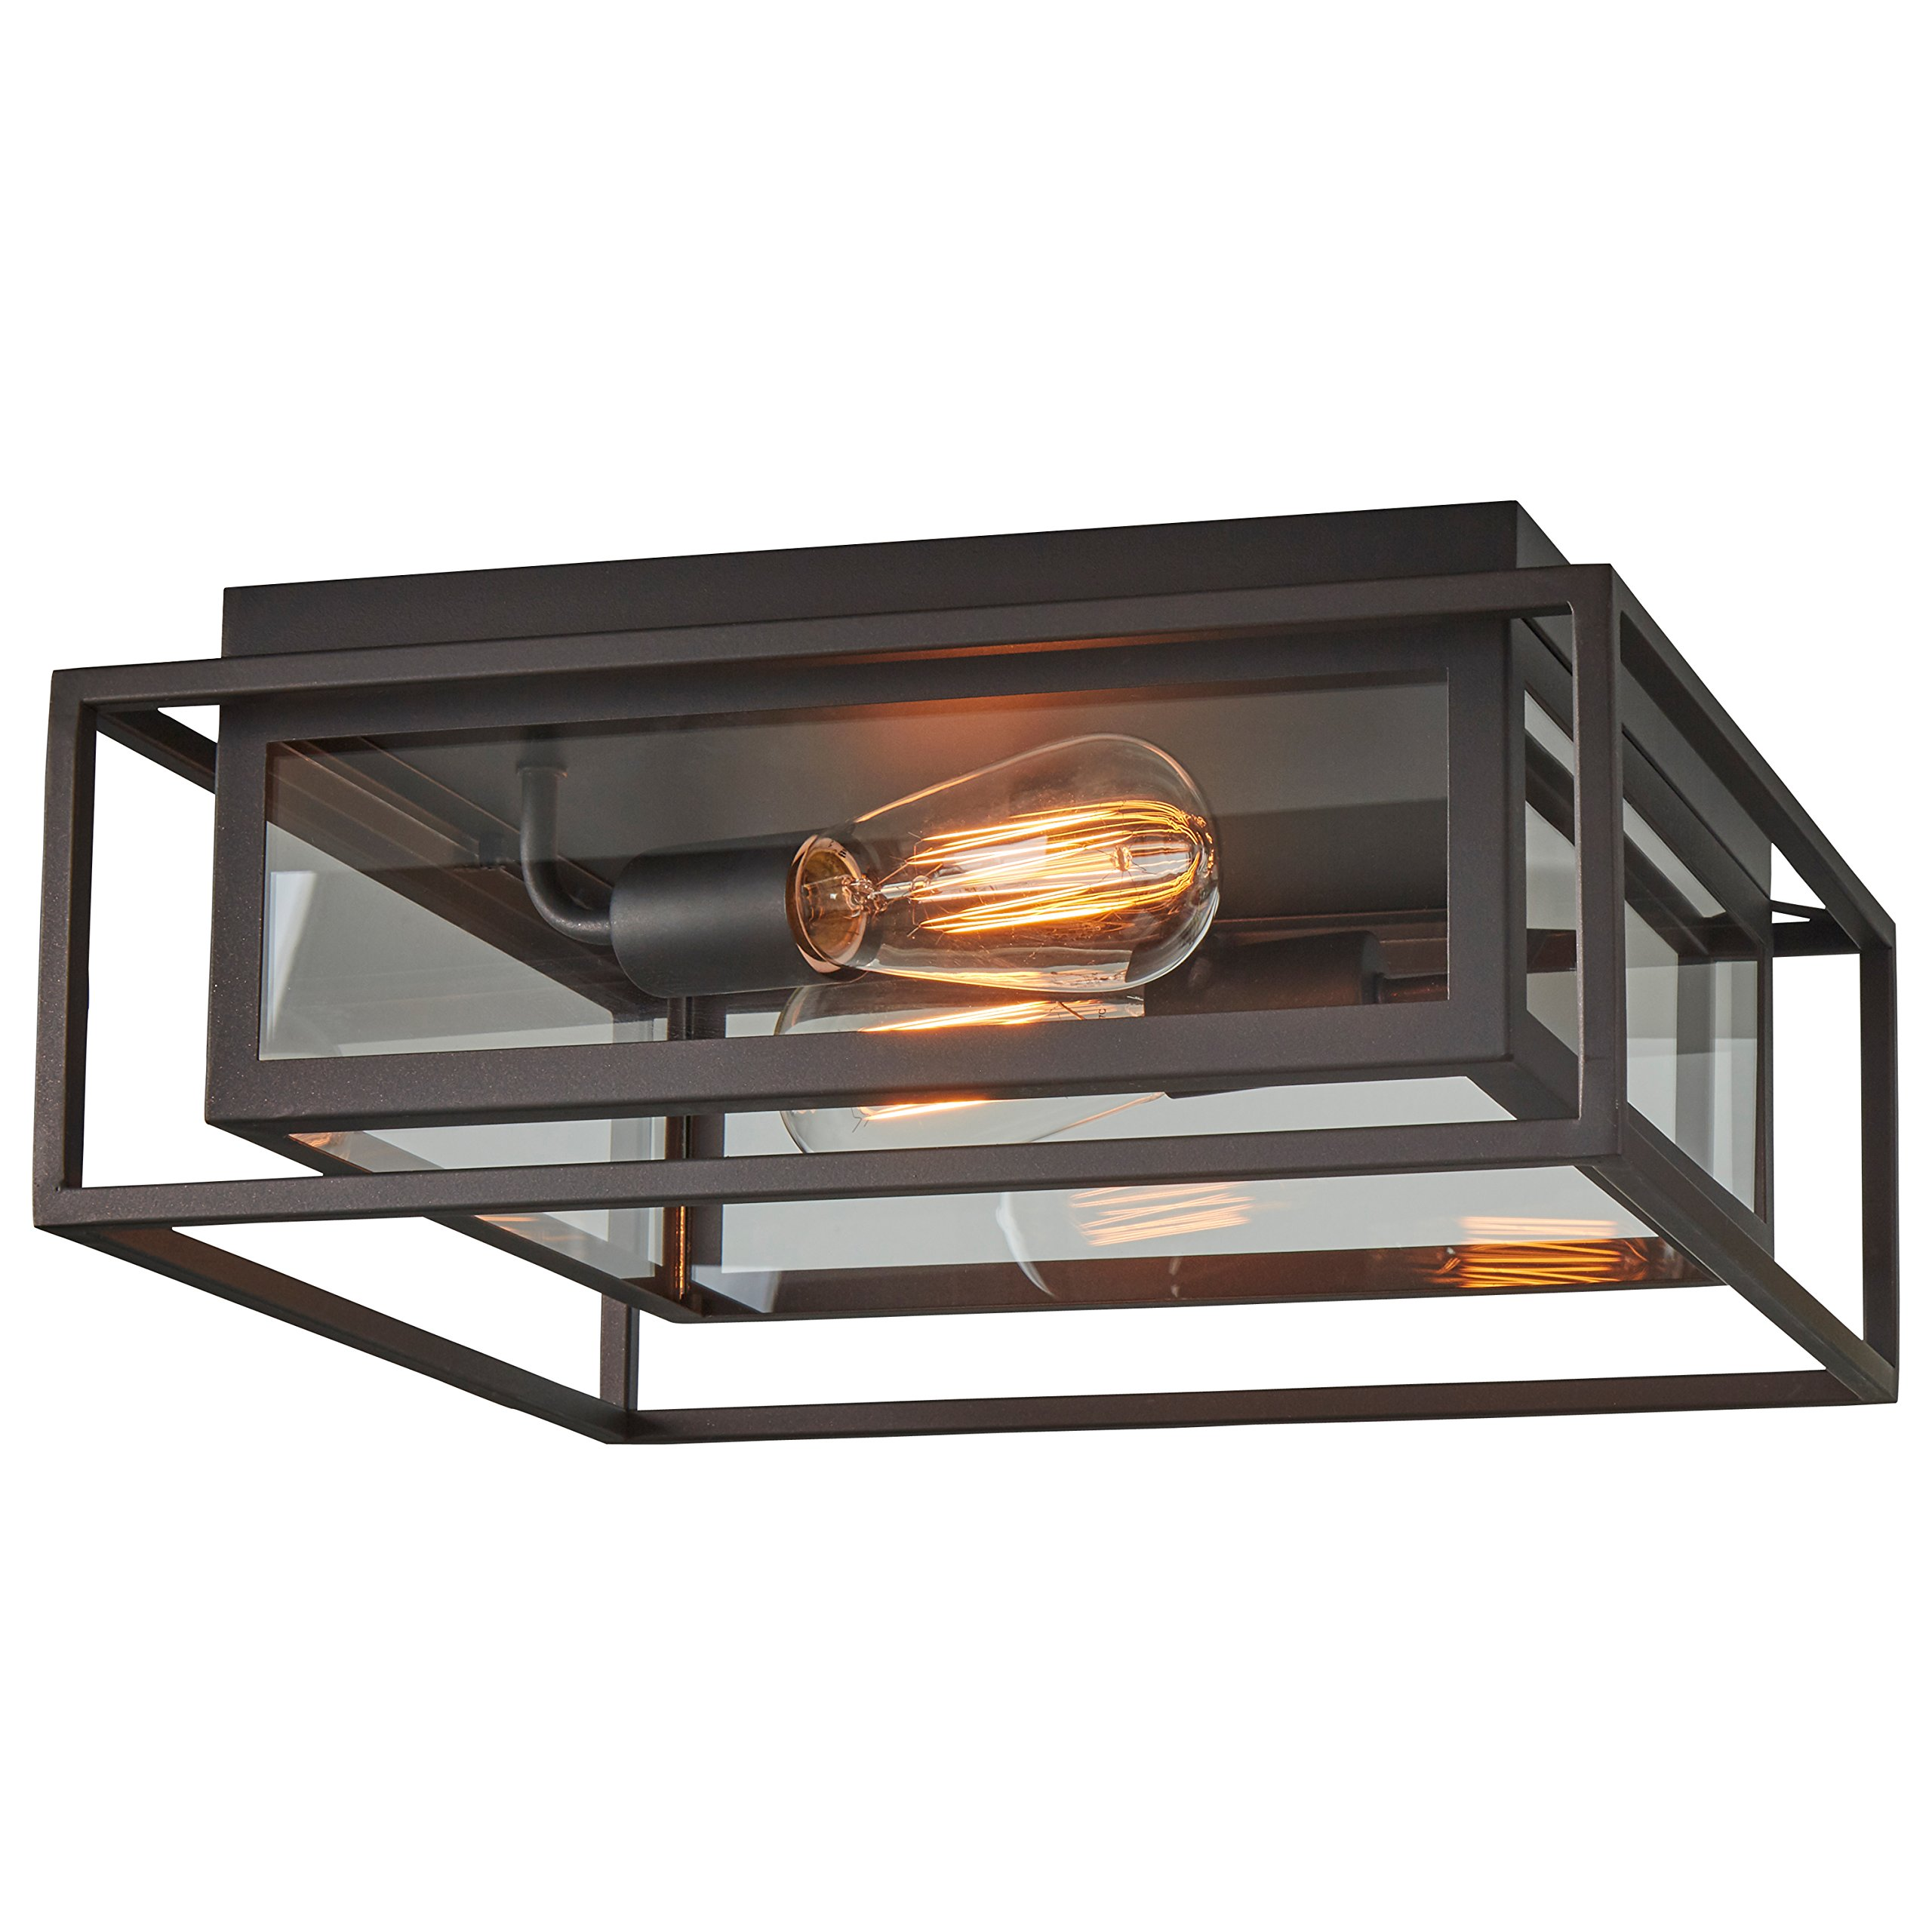 Stone & Beam Industrial Flush Mount Light With Bulbs, 6.5''H, Oil-Rubbed Bronze by Stone & Beam